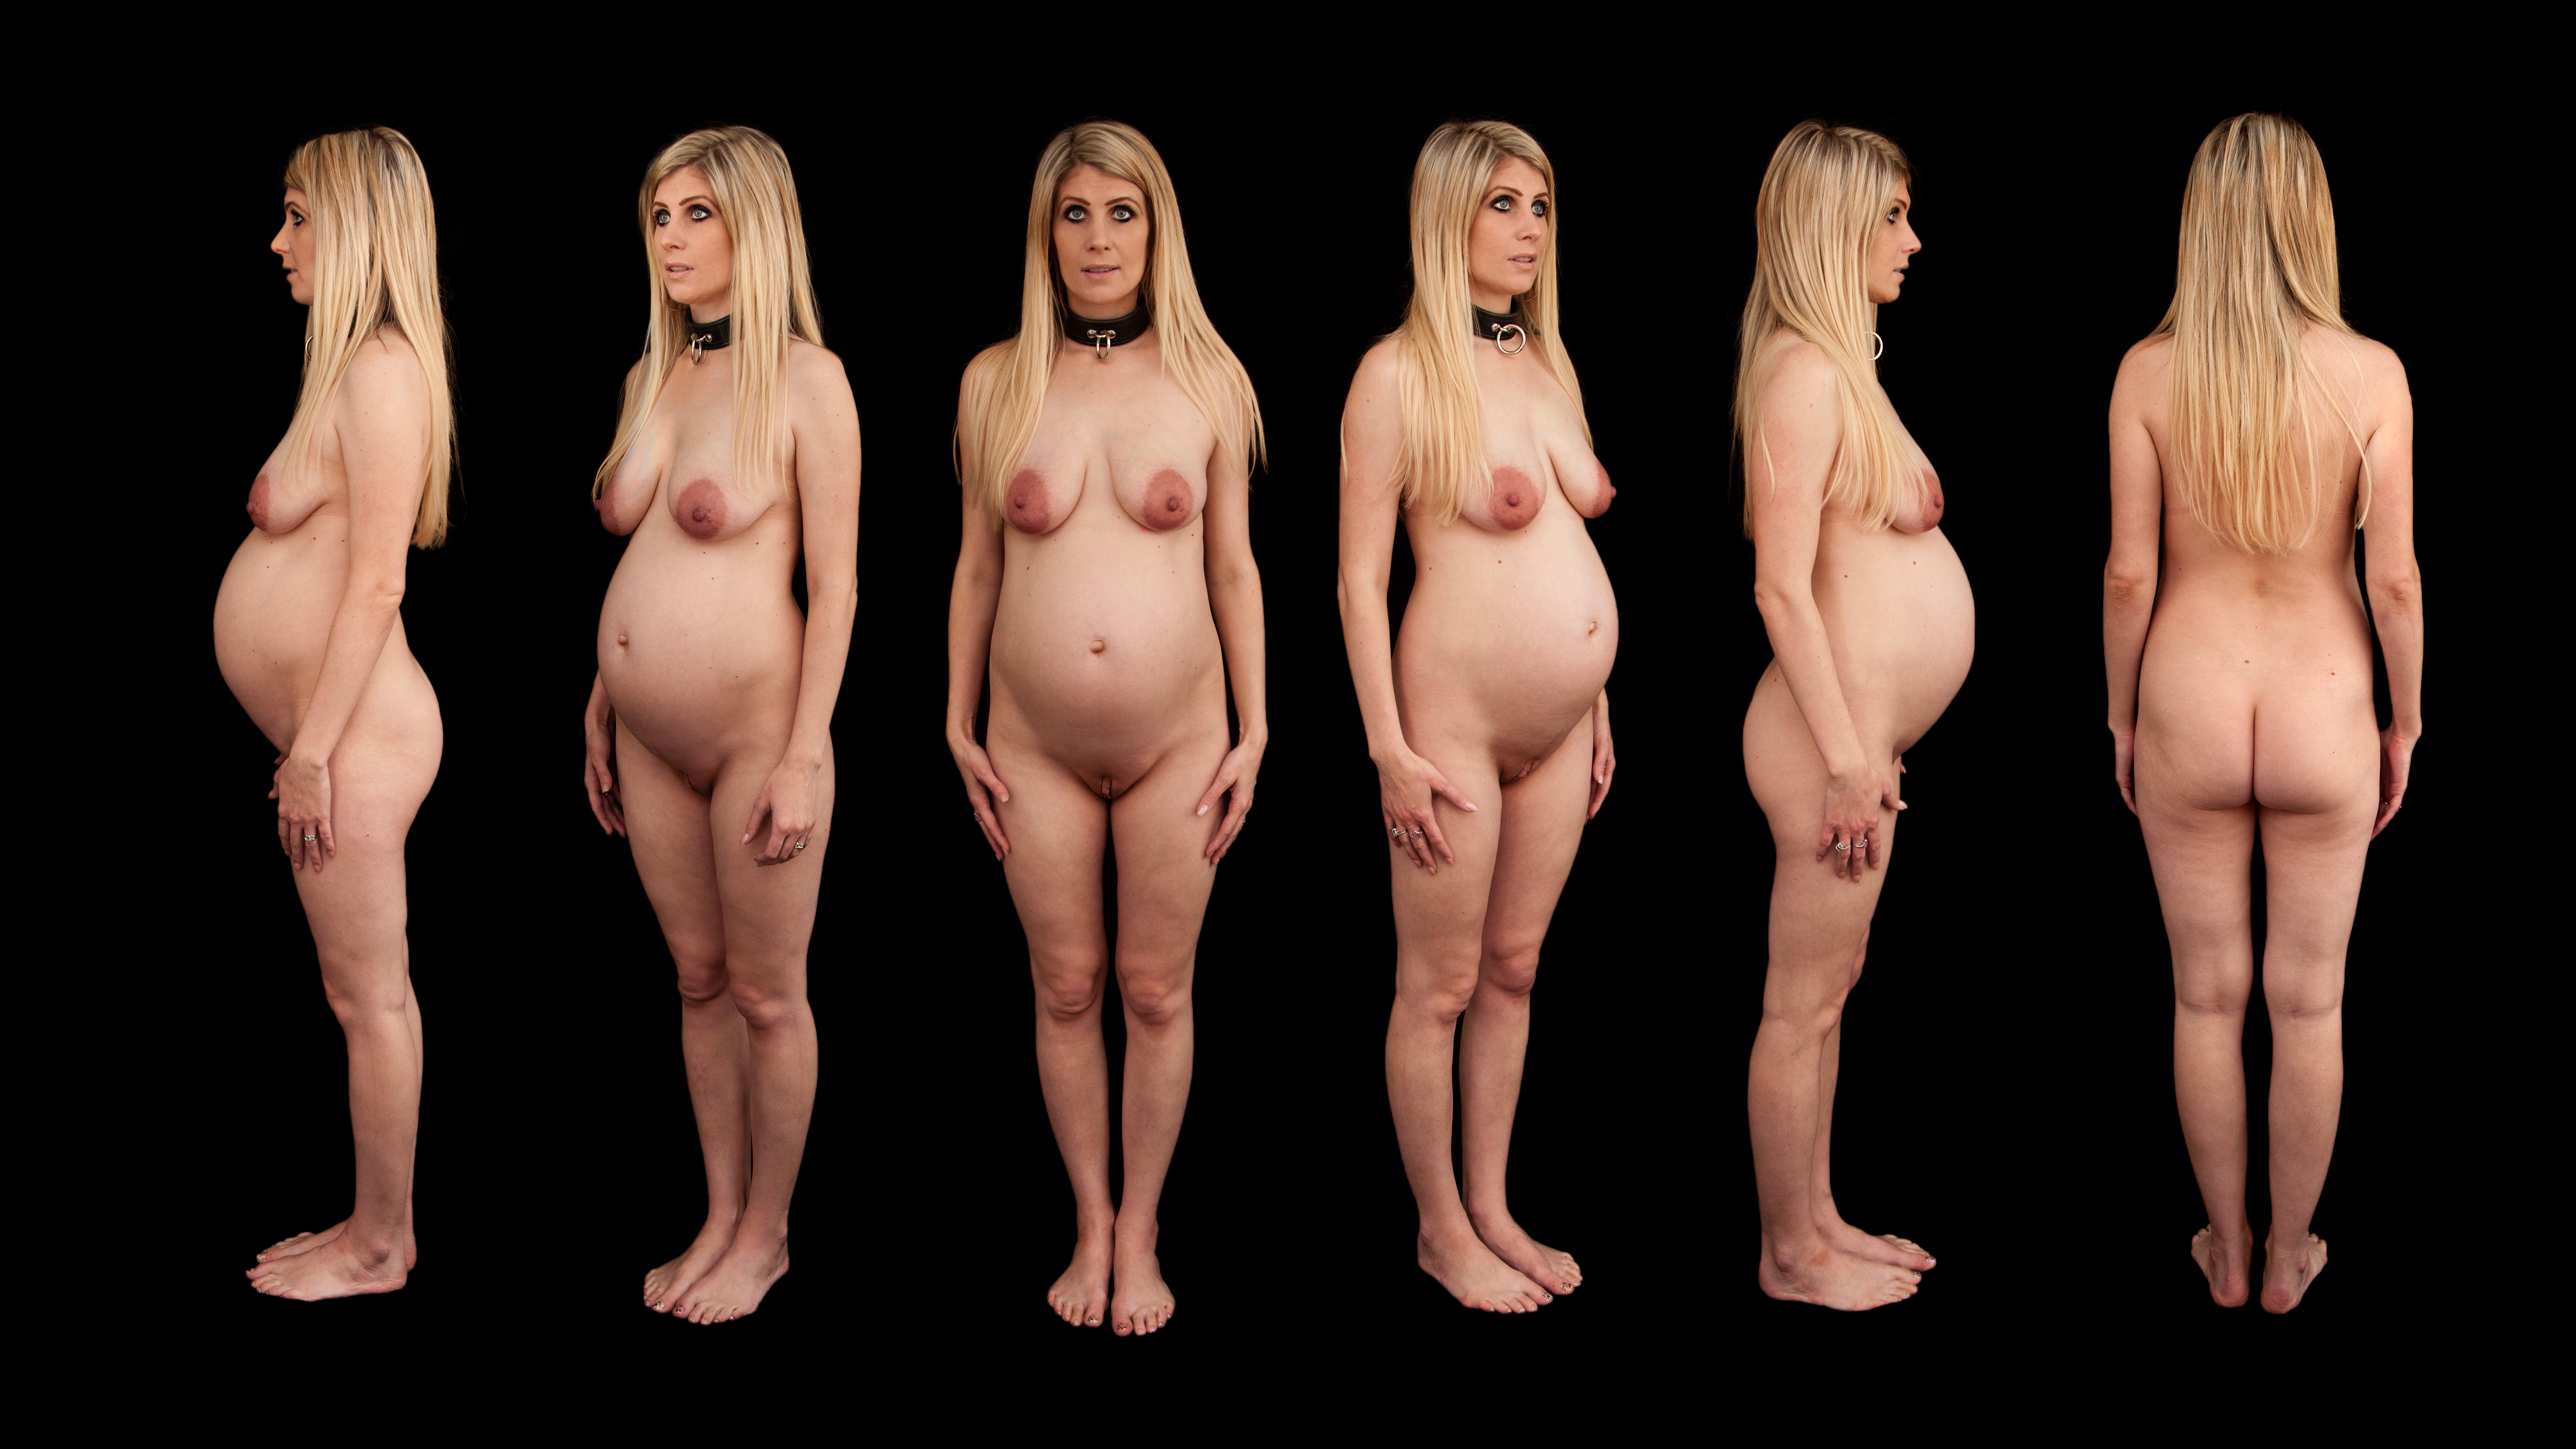 Nude pregnant group pictures